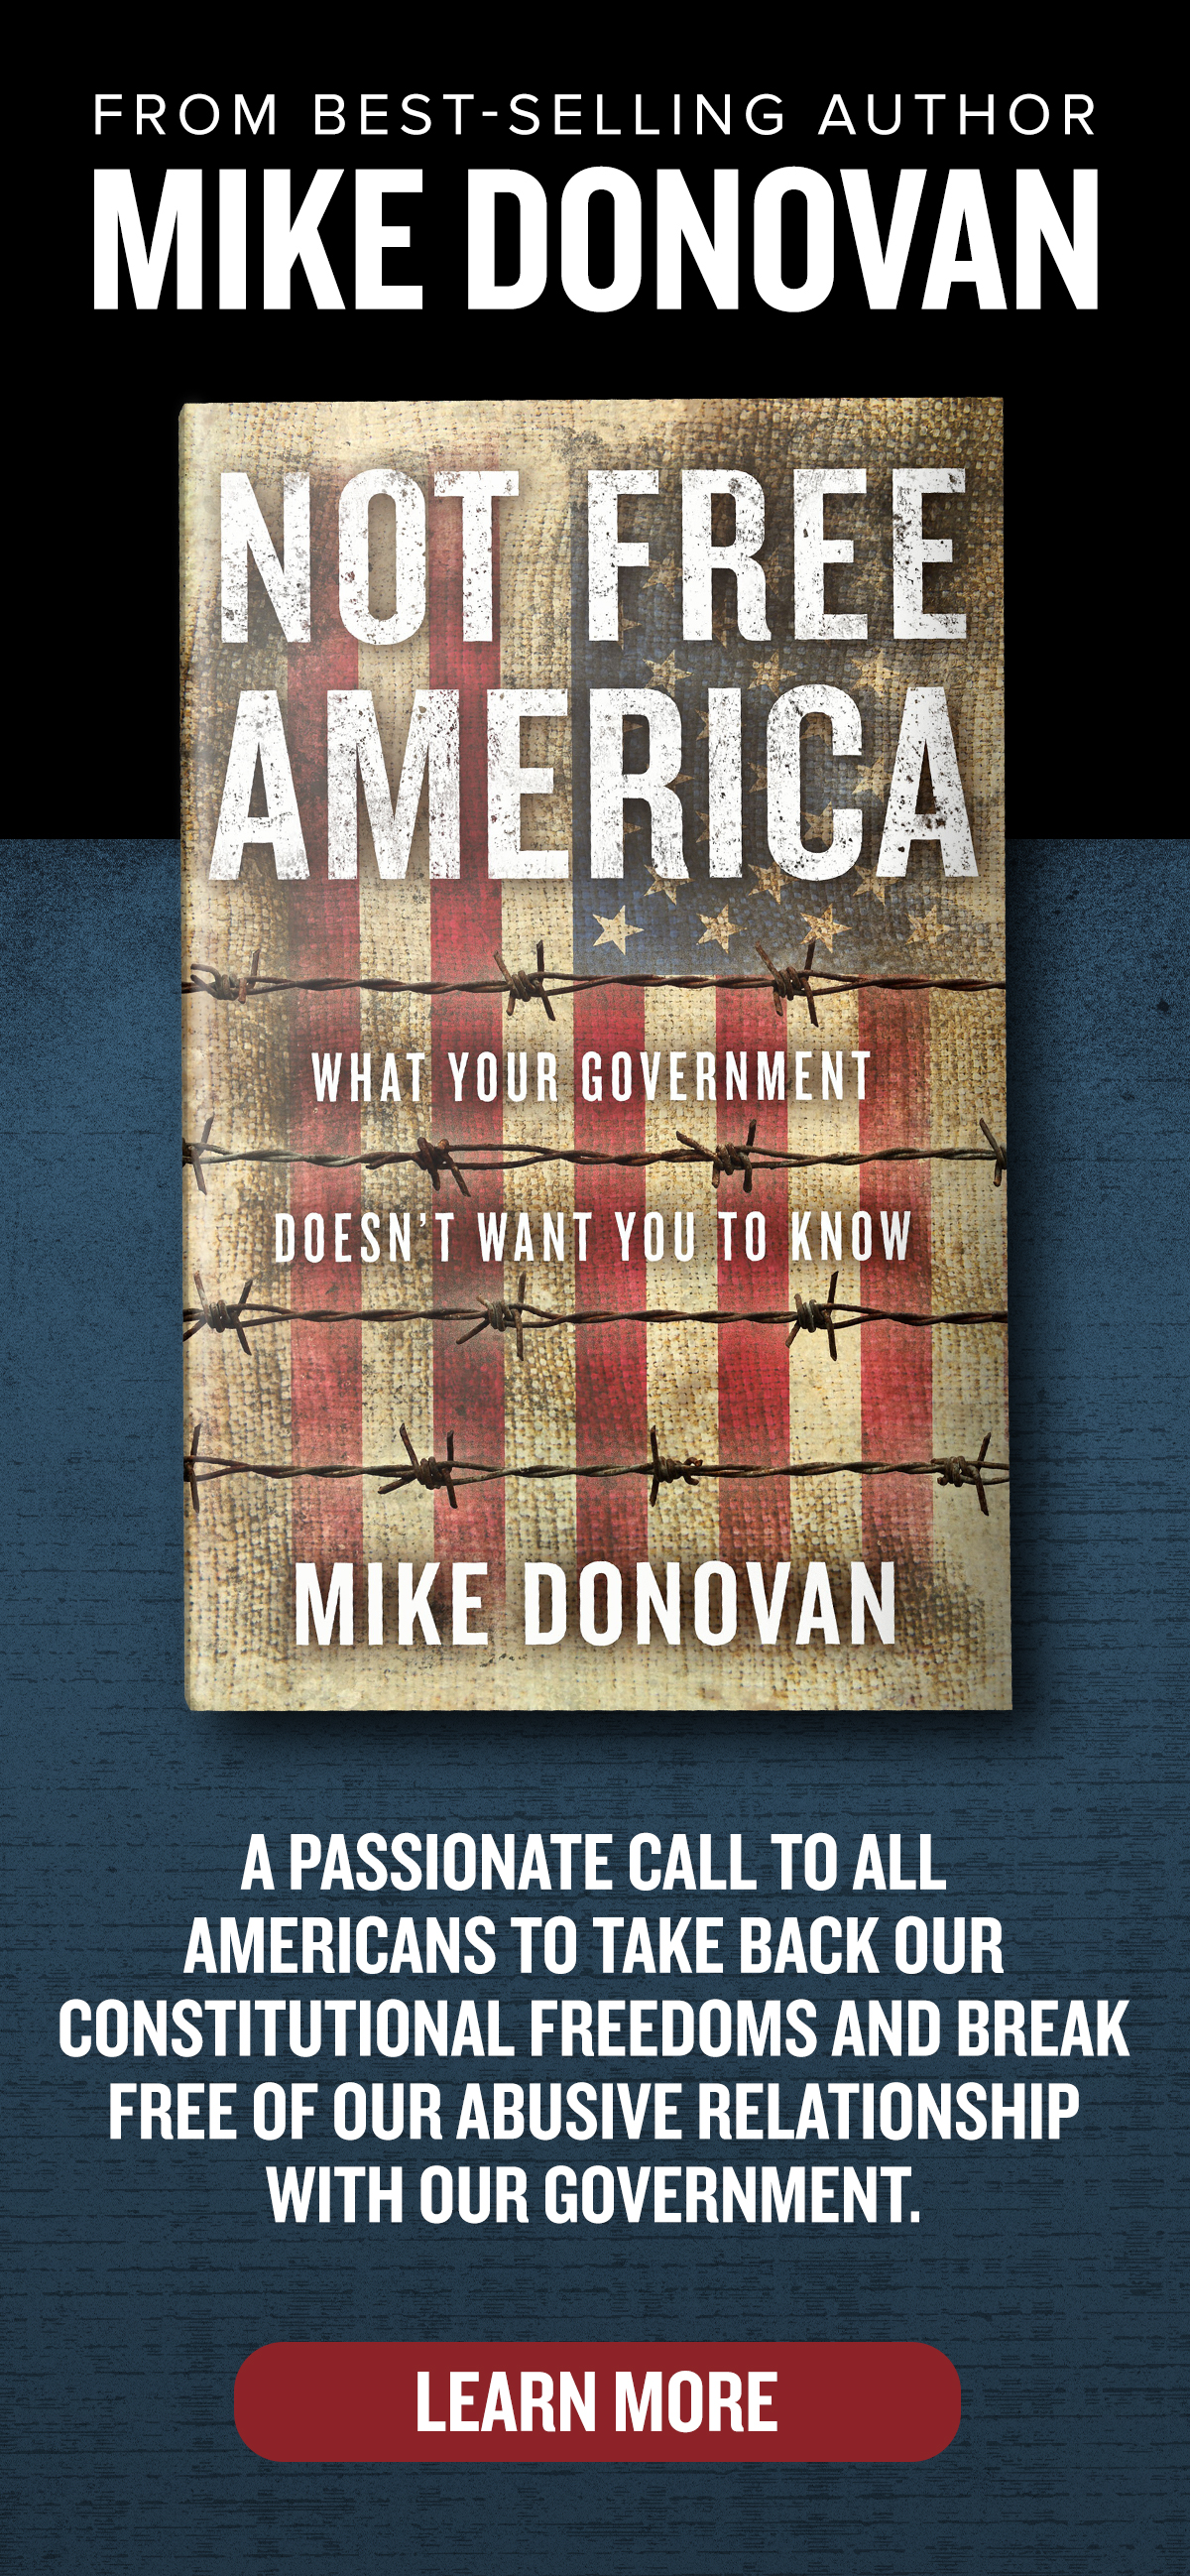 Not Free America: What your government doesn't want you to know by Mike Donovan